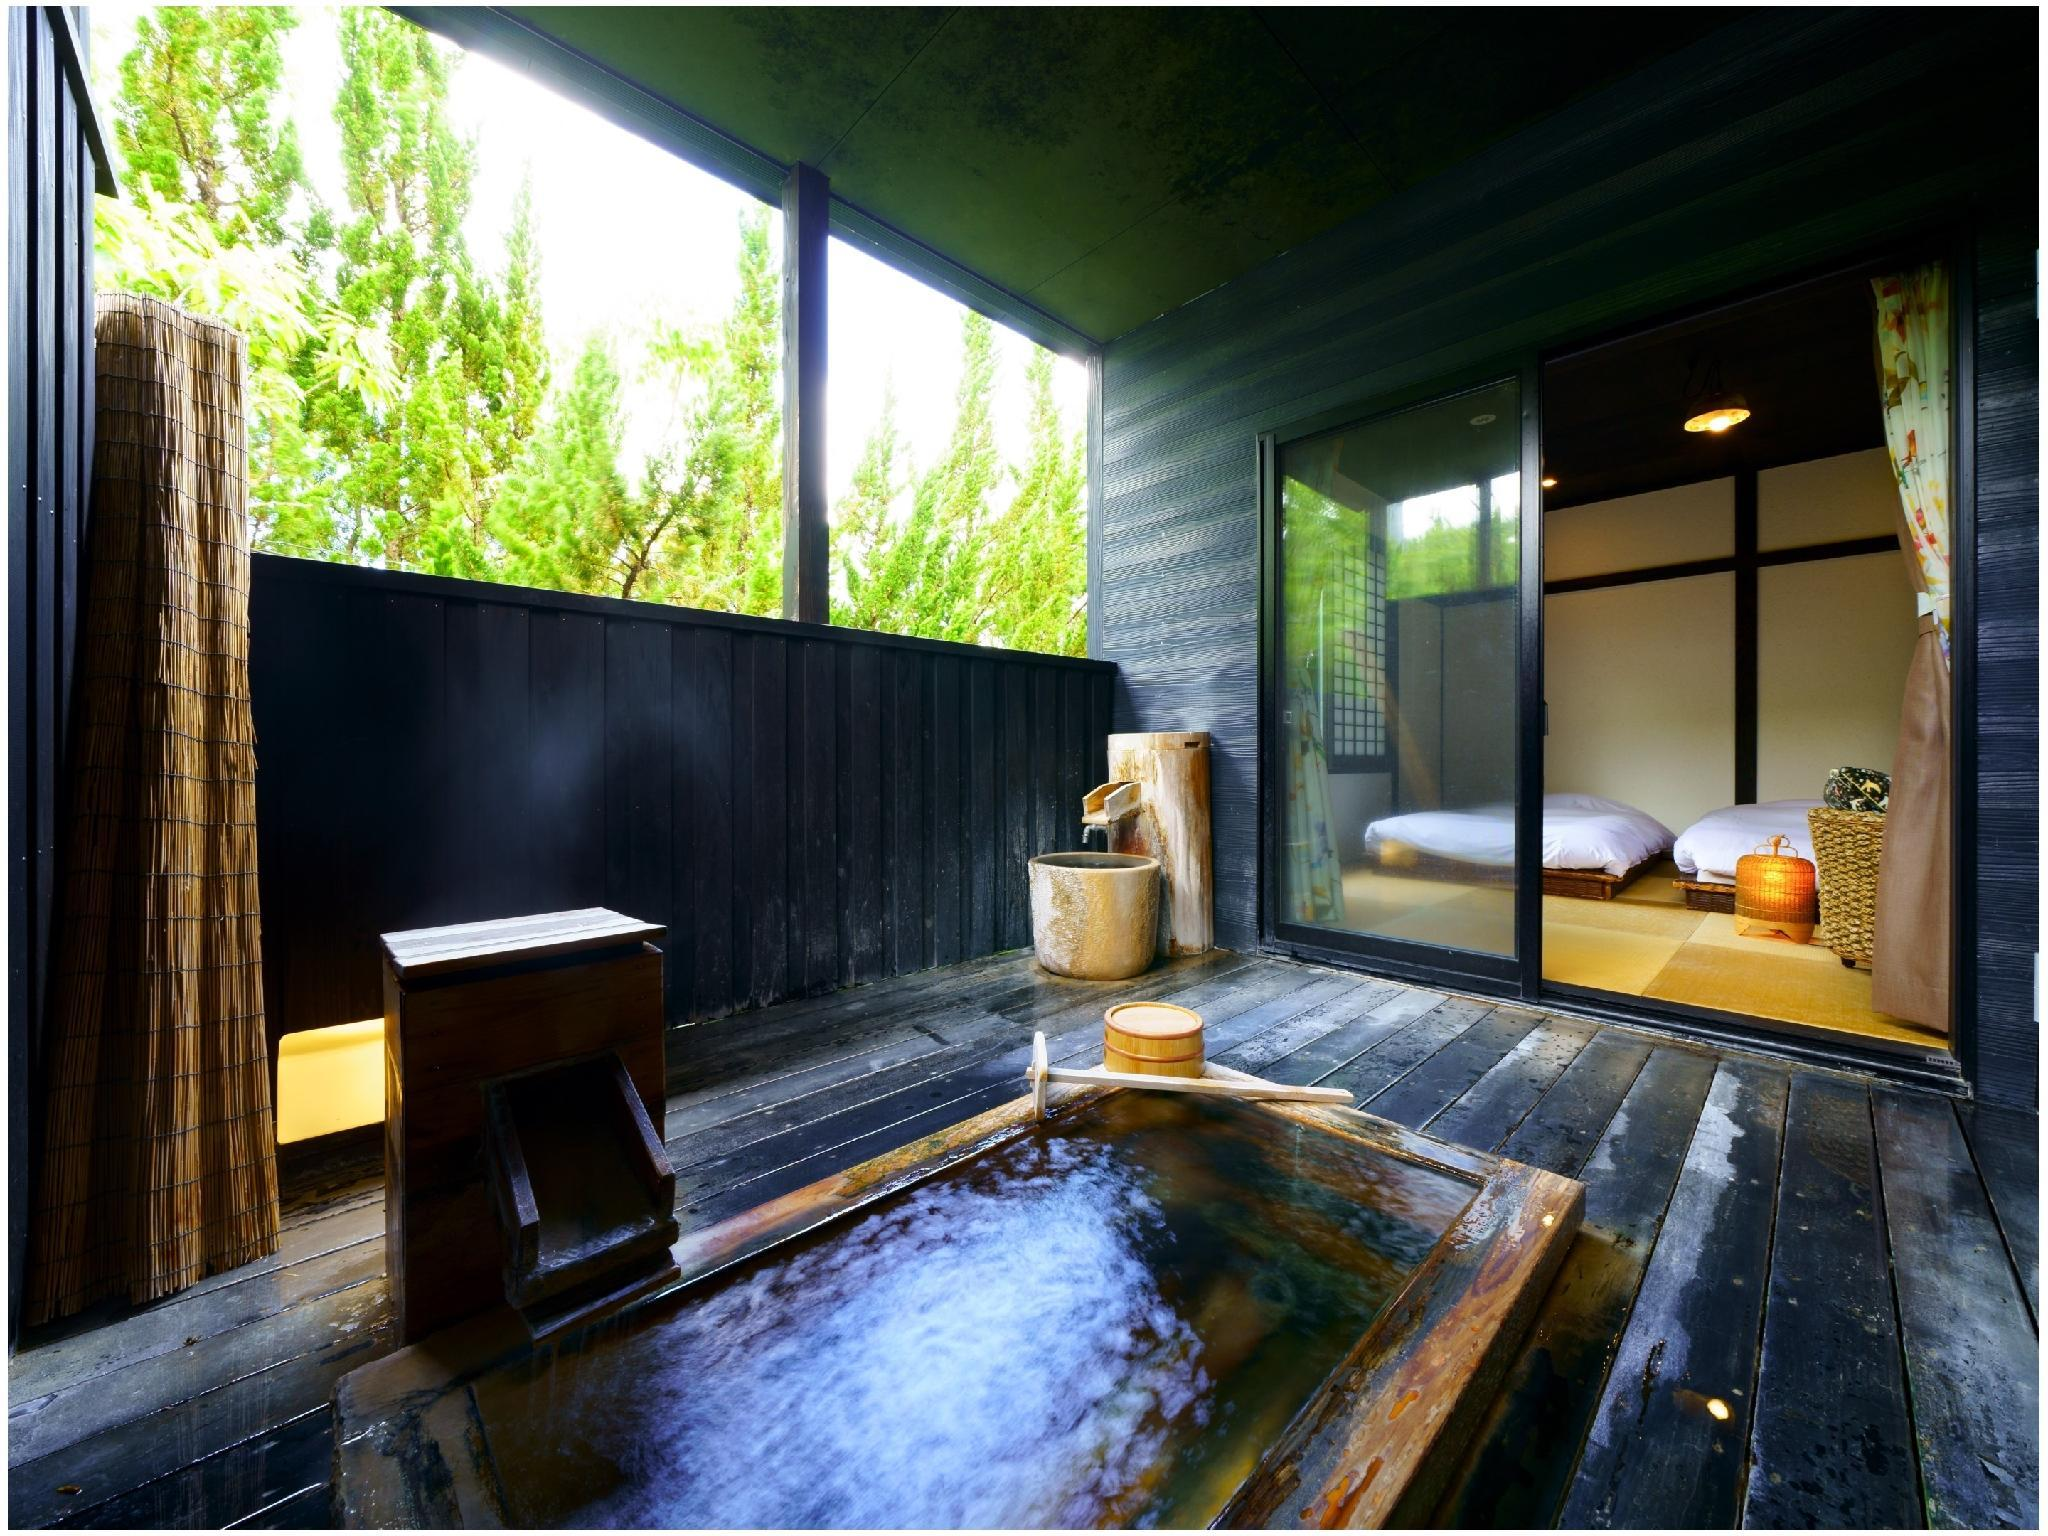 獨立房(和式房+2張床+露天風呂) (Detached Japanese-style Room with Open-air Bath (Twin Beds))